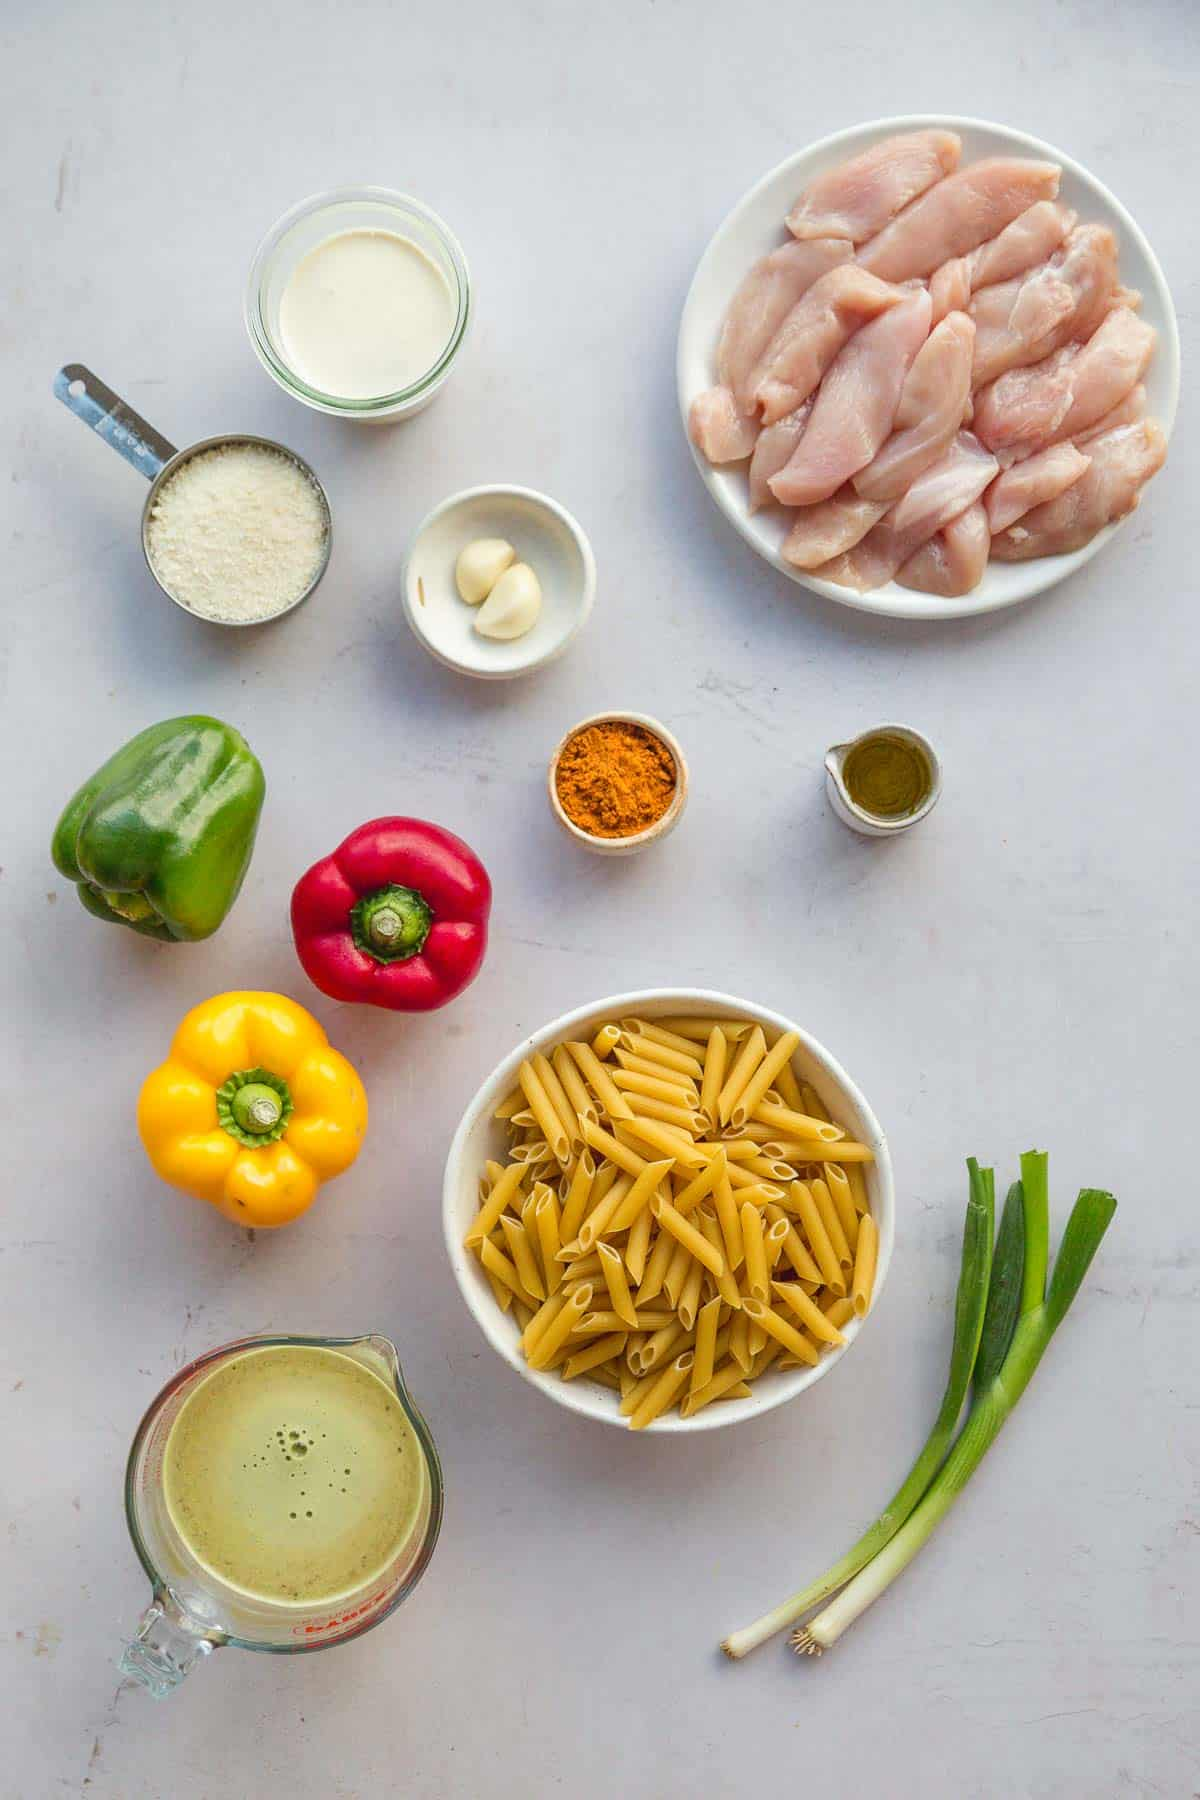 The ingredients of Rasta Pasta